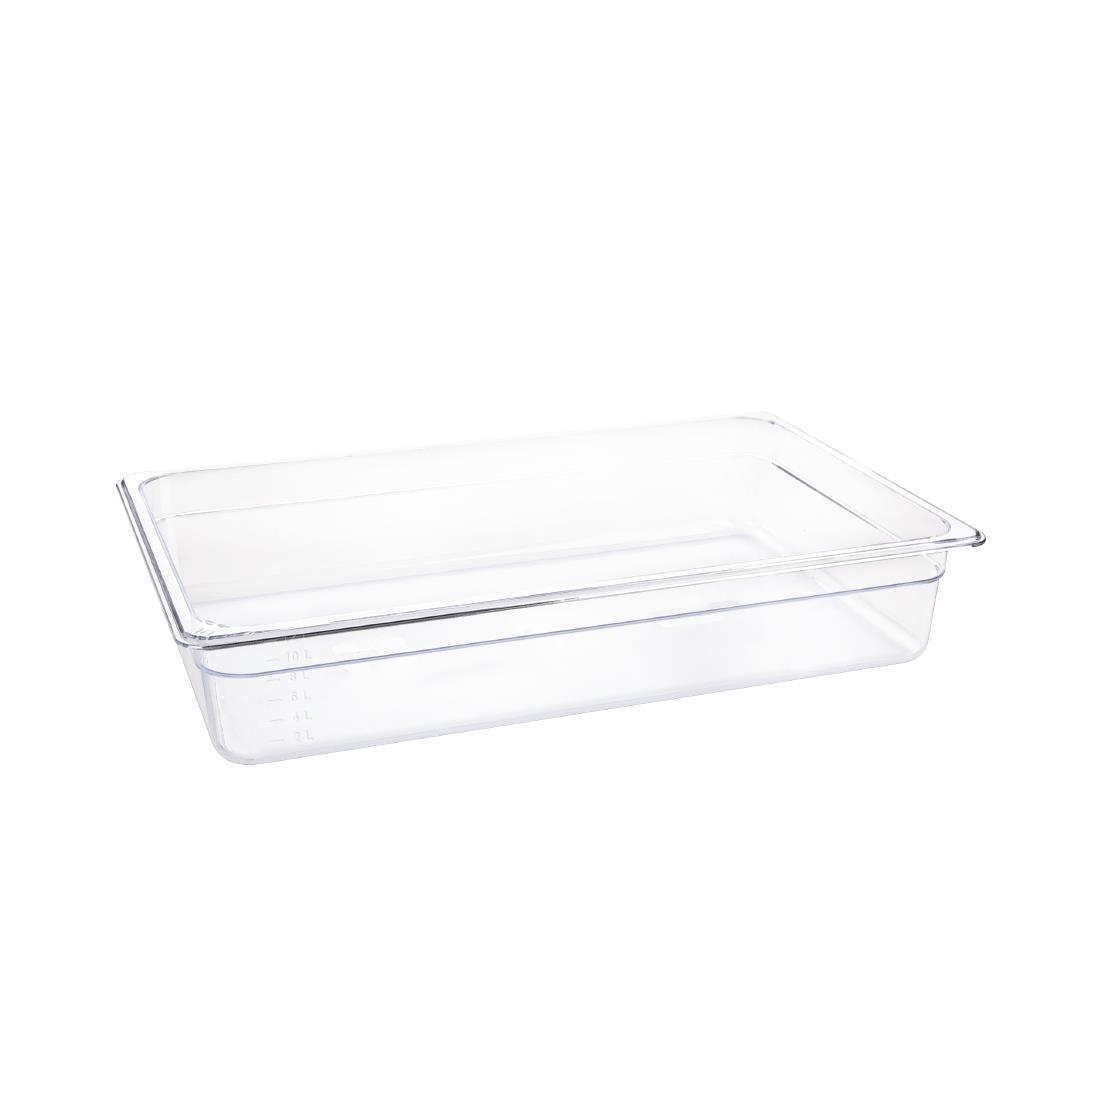 Vogue Polycarbonate 1/1 Gastronorm Container 100mm Clear - U225